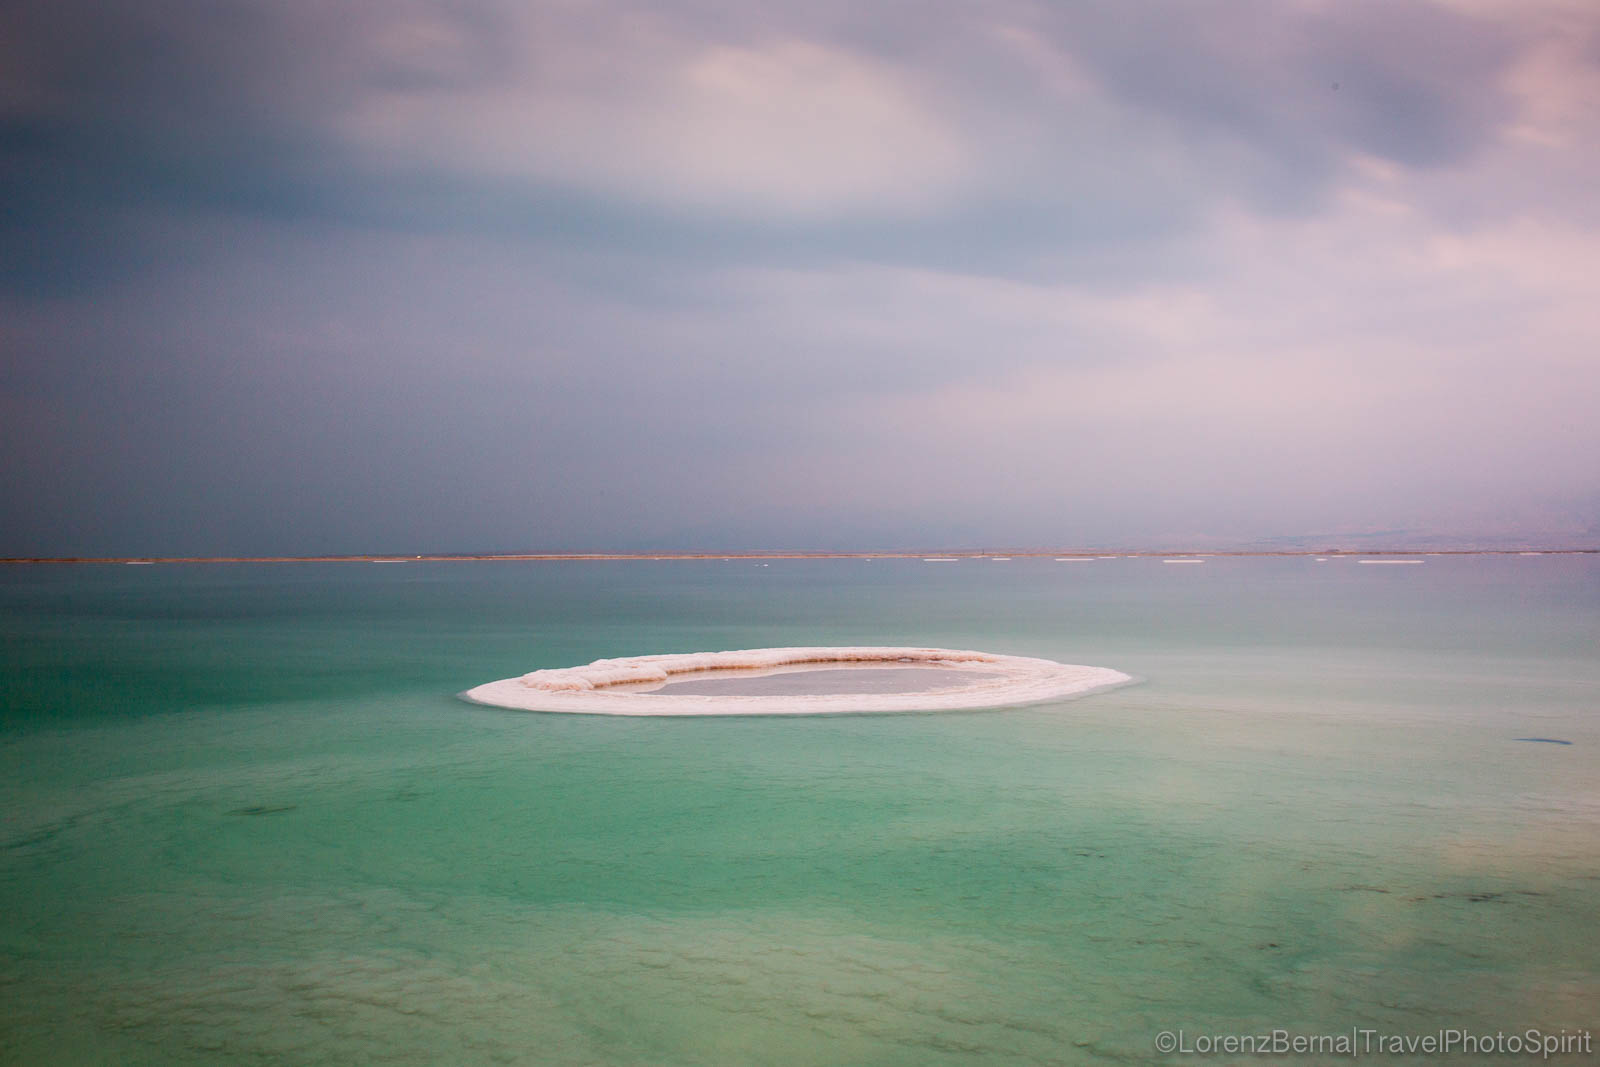 A salt island in the middle of the Dead Sea, Israel.